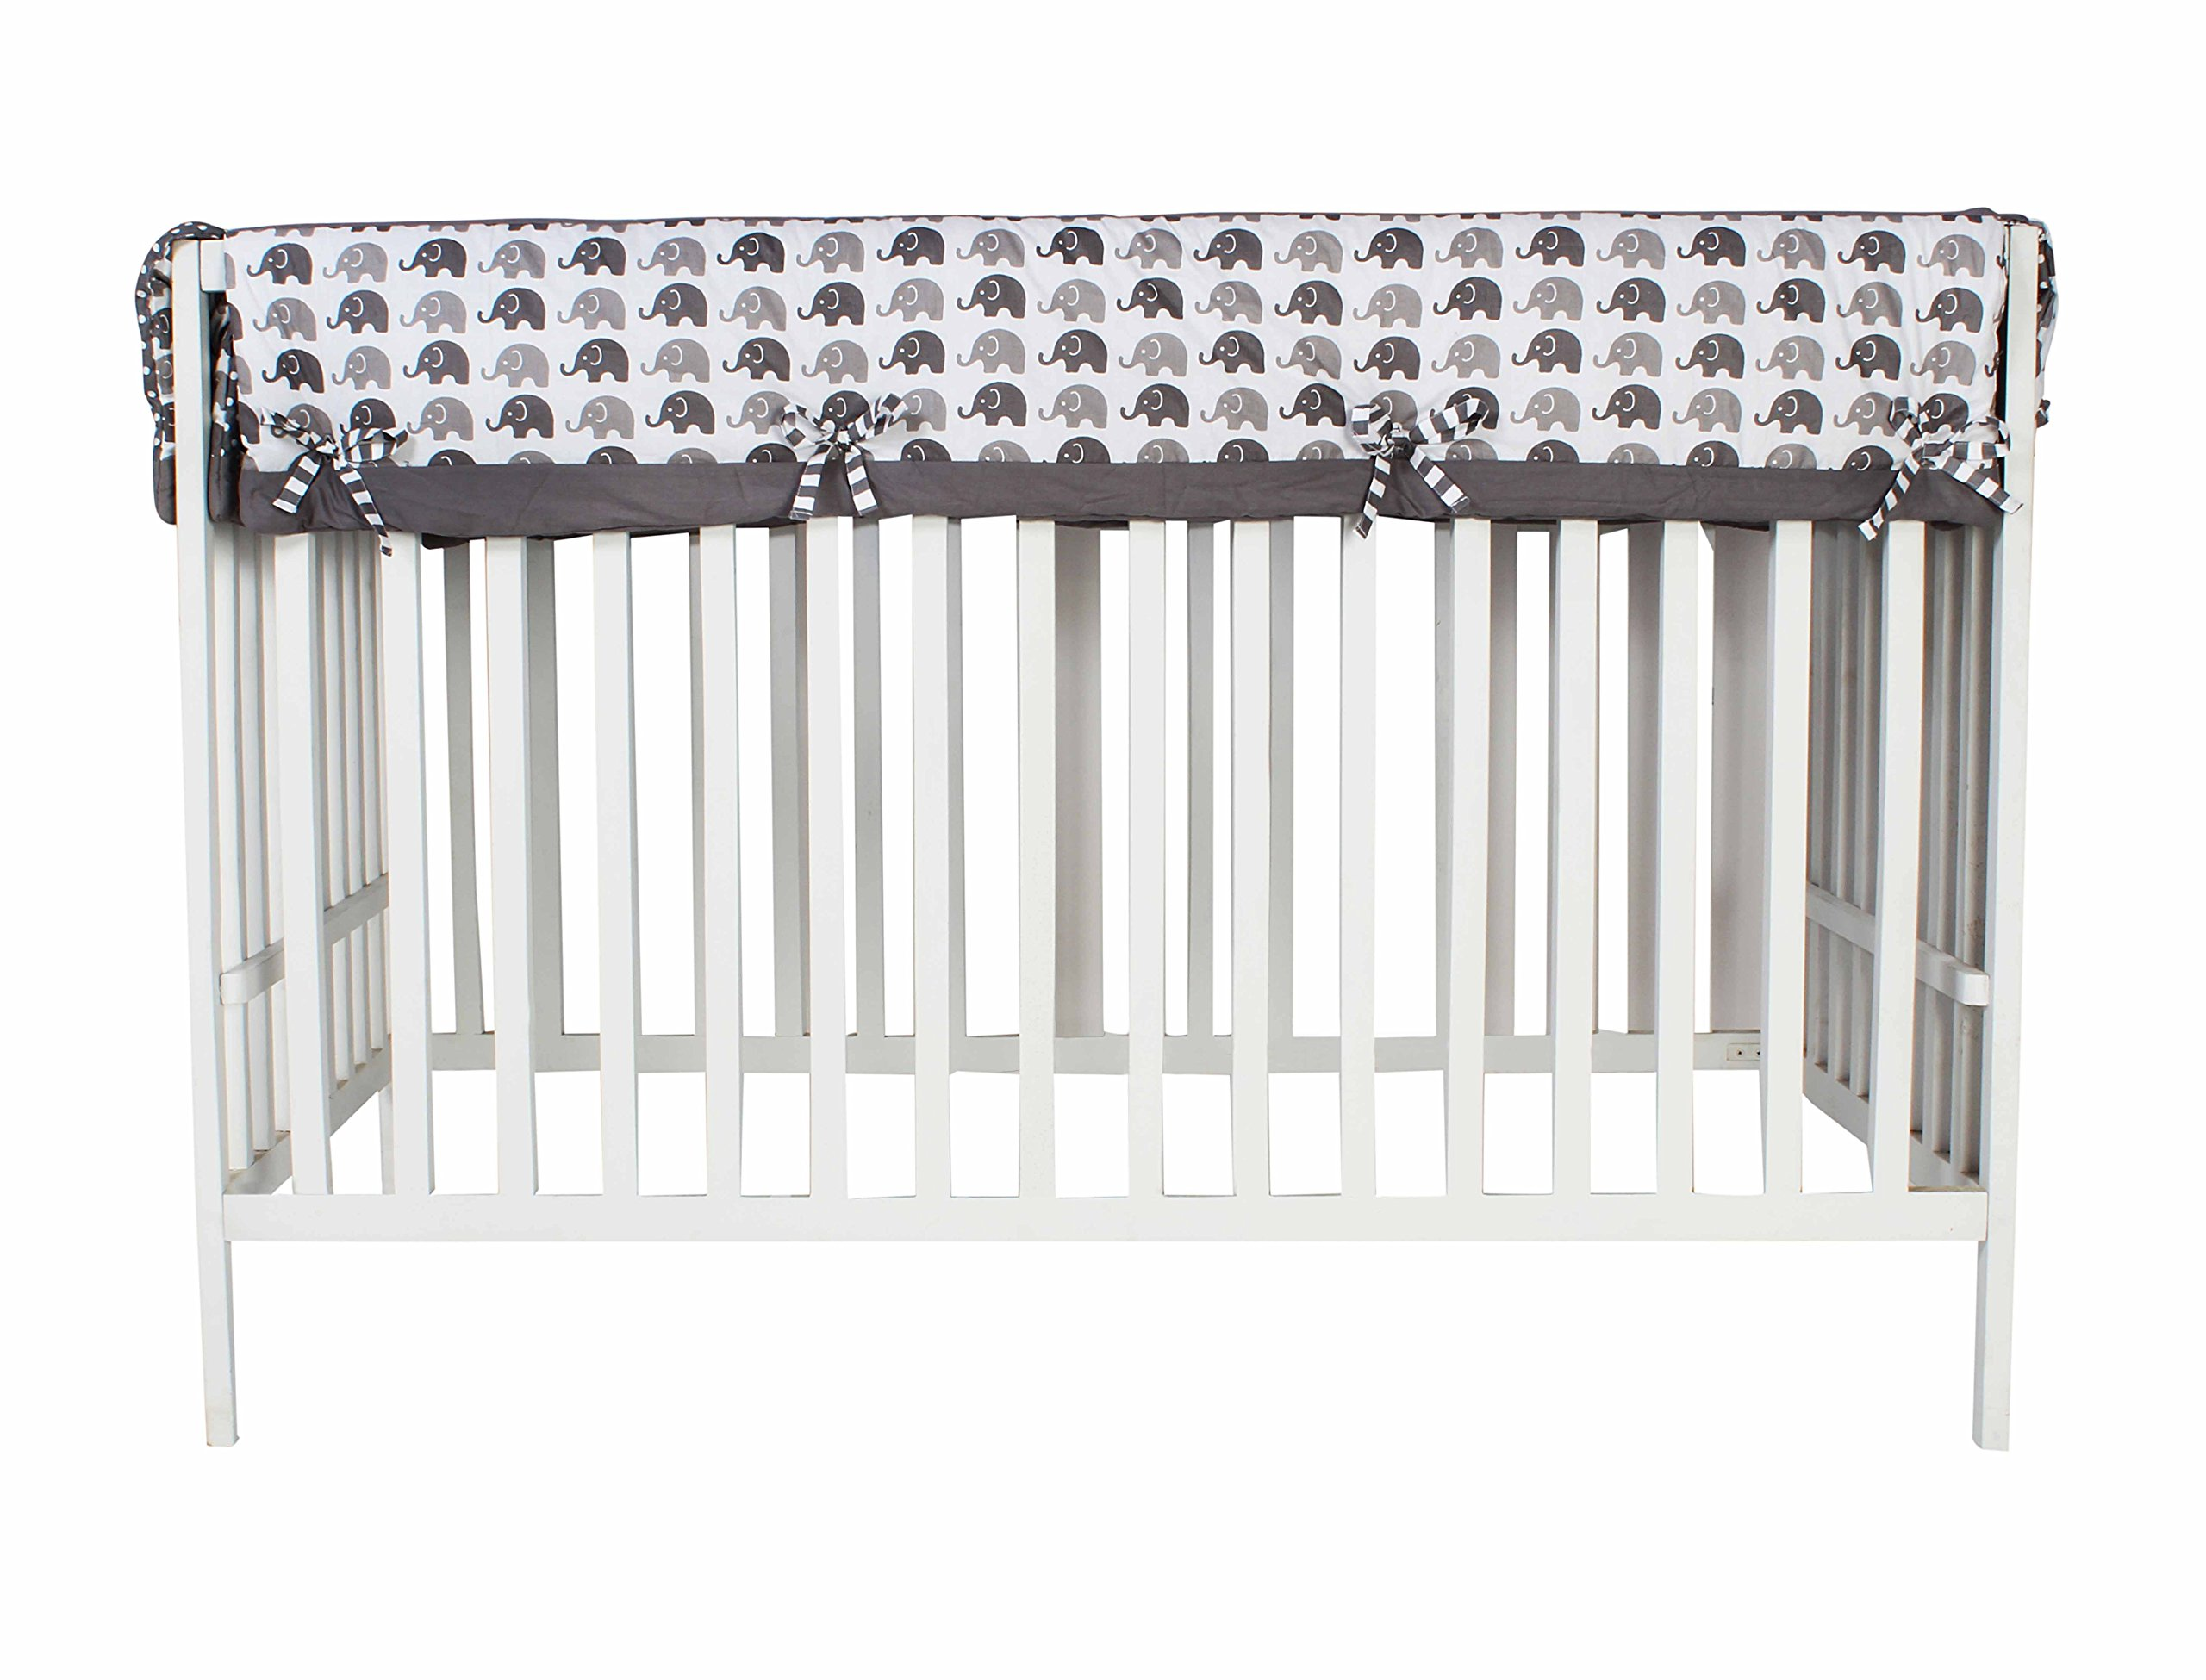 Bacati Elephants Unisex Long Crib Rail Guard Cover Made with 100 Cotton Percale Fabrics and Polyester Batting for US Standard Cribs, Grey